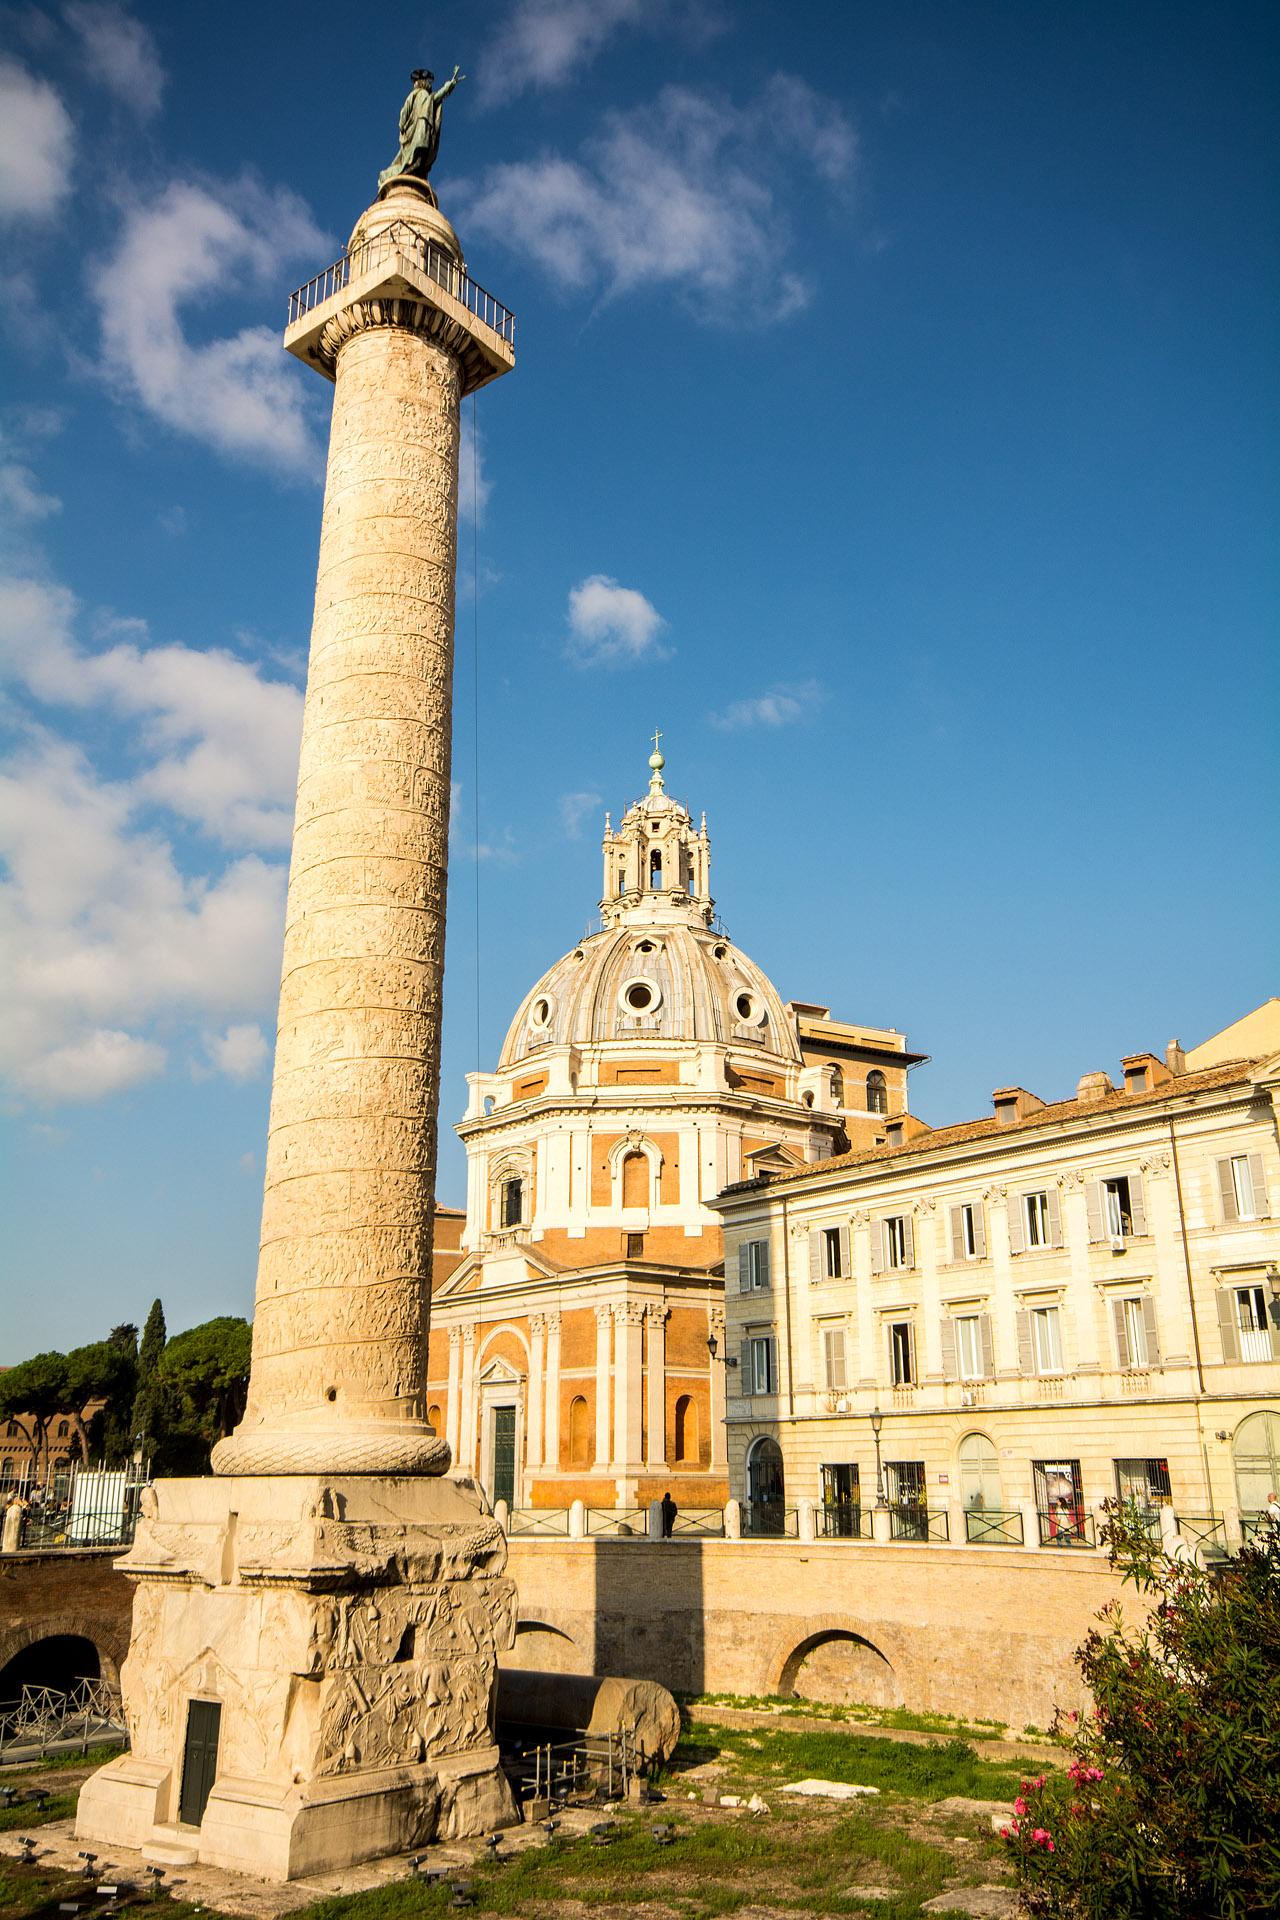 Trajan's Column & Church of Santa Maria di Loreto